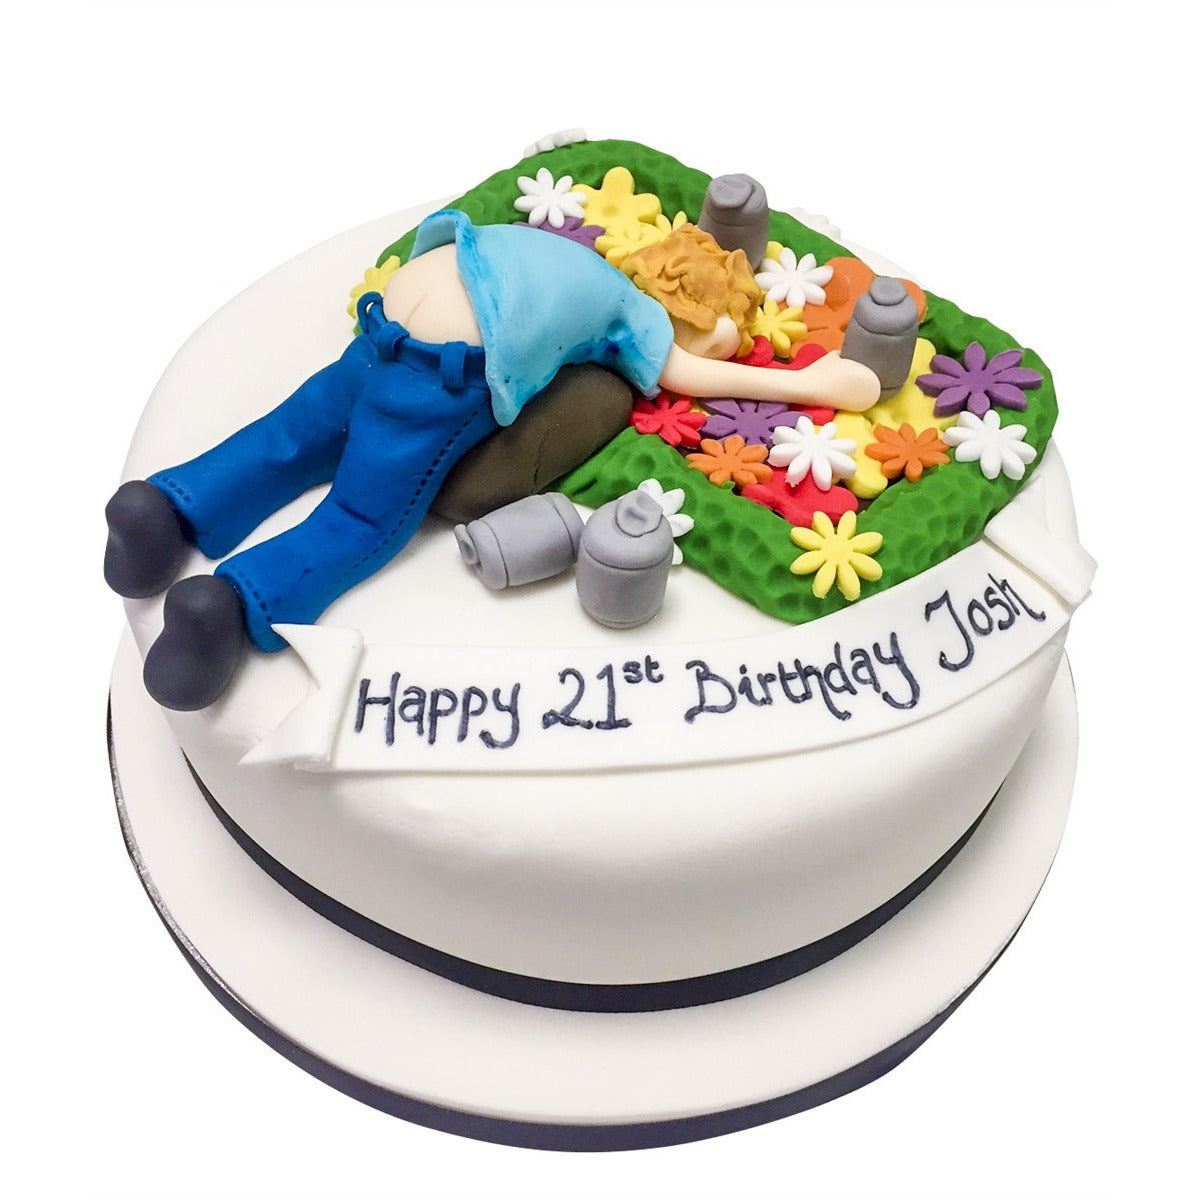 Admirable Boozy Alcohol Cakes For Men Free Next Day Uk Delivery New Cakes Funny Birthday Cards Online Inifofree Goldxyz